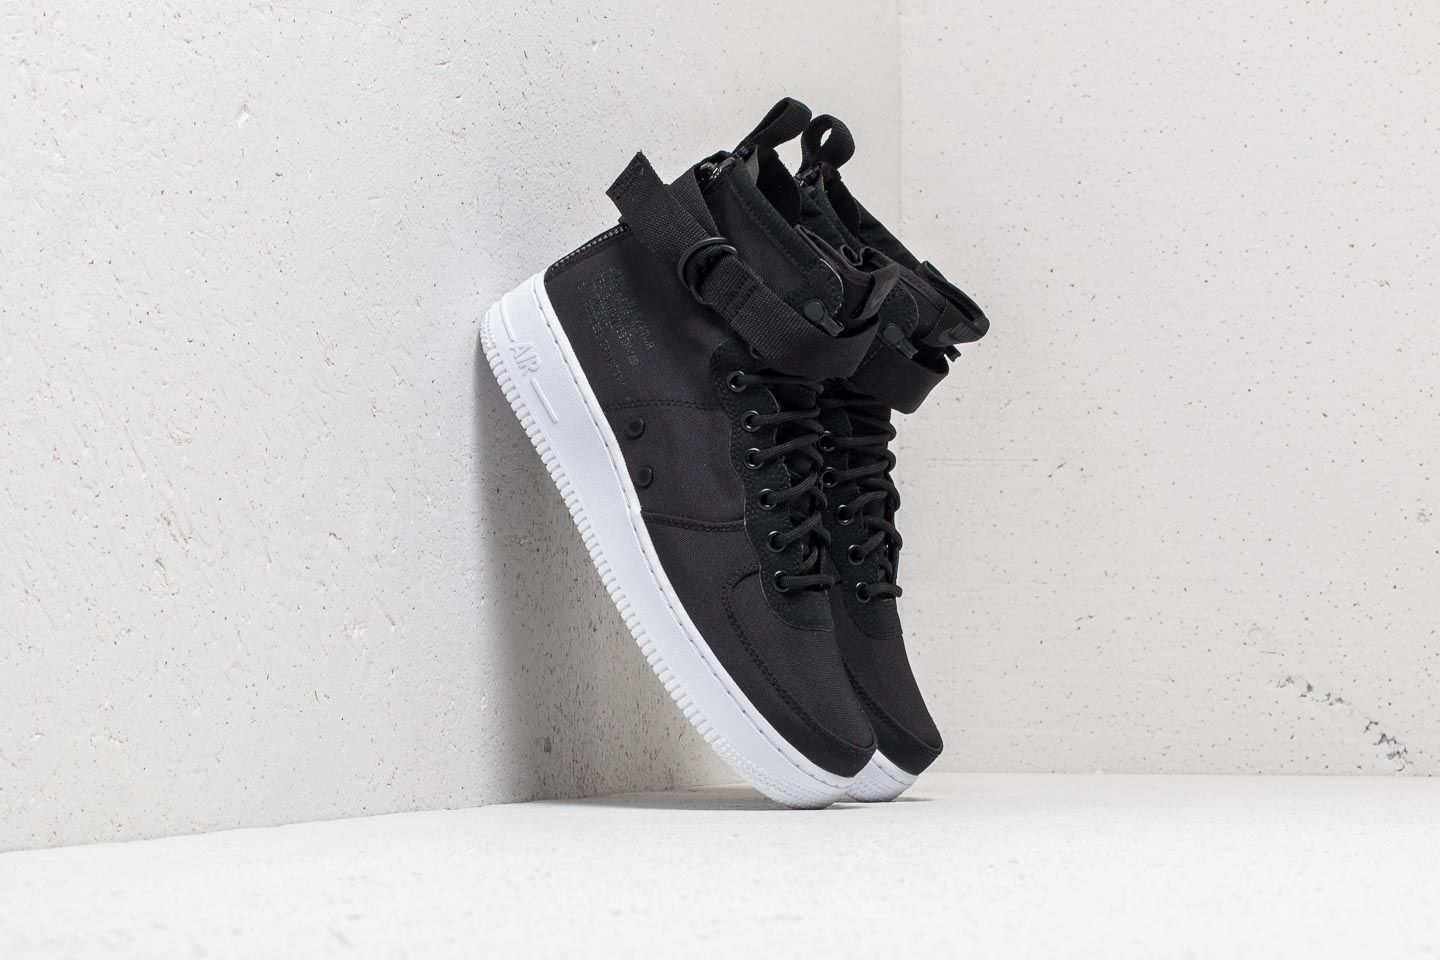 Nike Special Field Air Force 1 Mid Black Anthracite White | Footshop